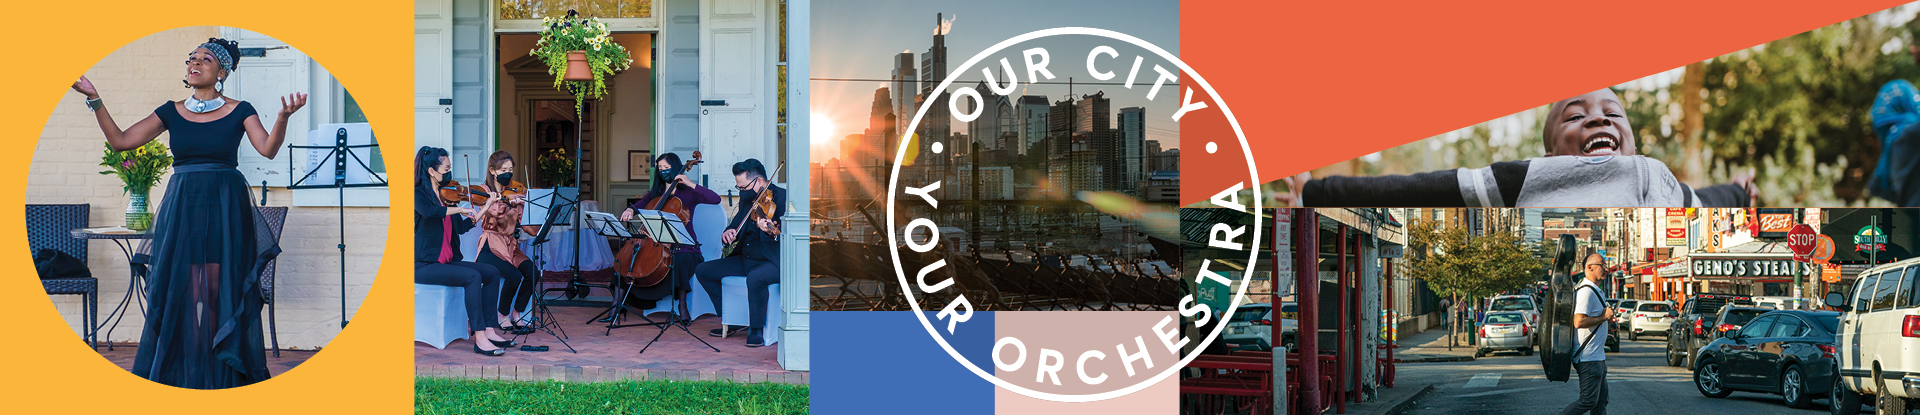 Our City Your Orchestra